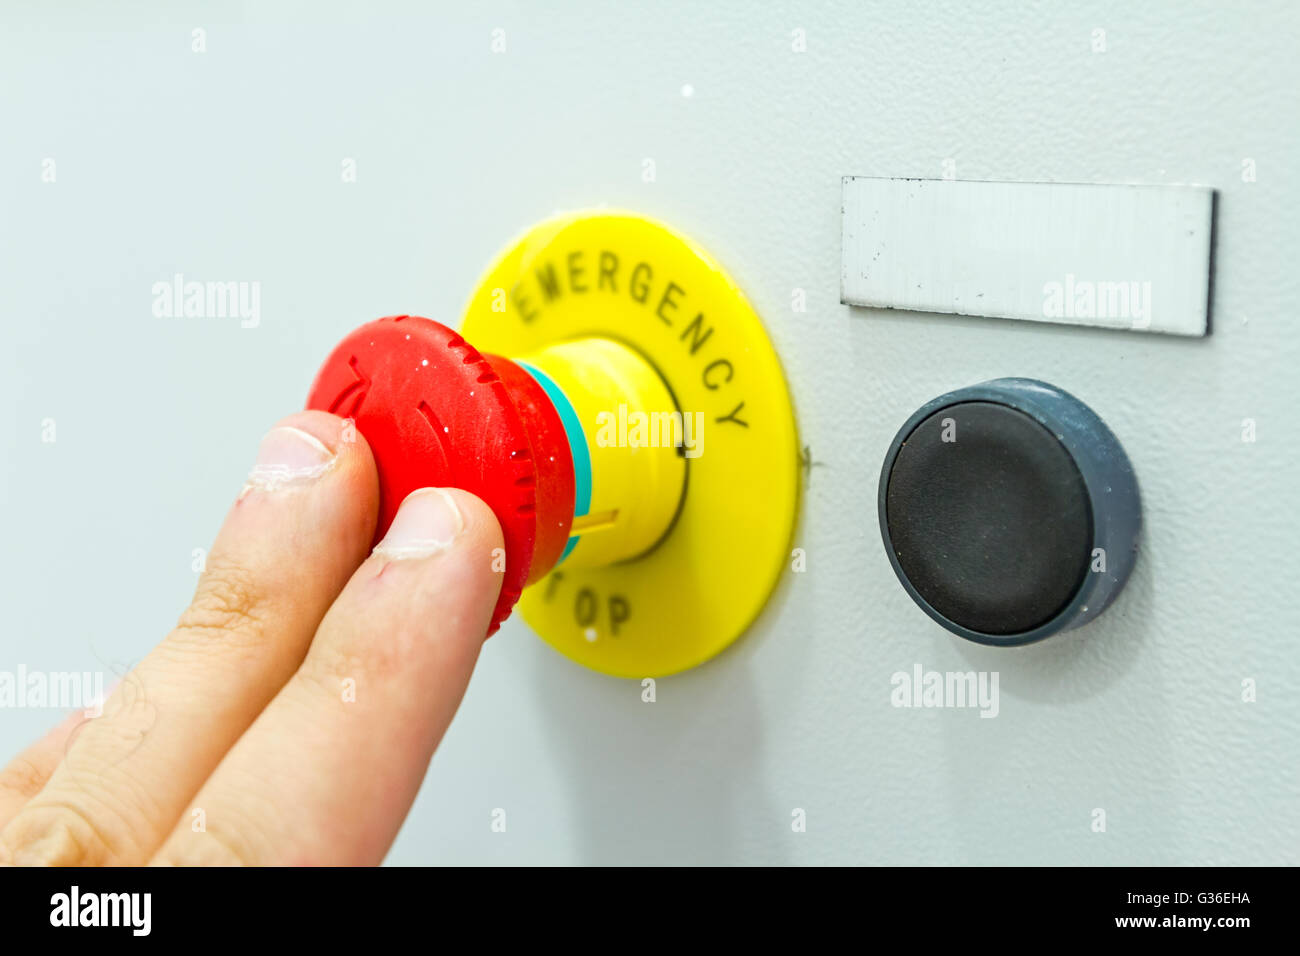 hight resolution of activation or shutdown fuse box with an emergency reset buttonactivation or shutdown fuse box